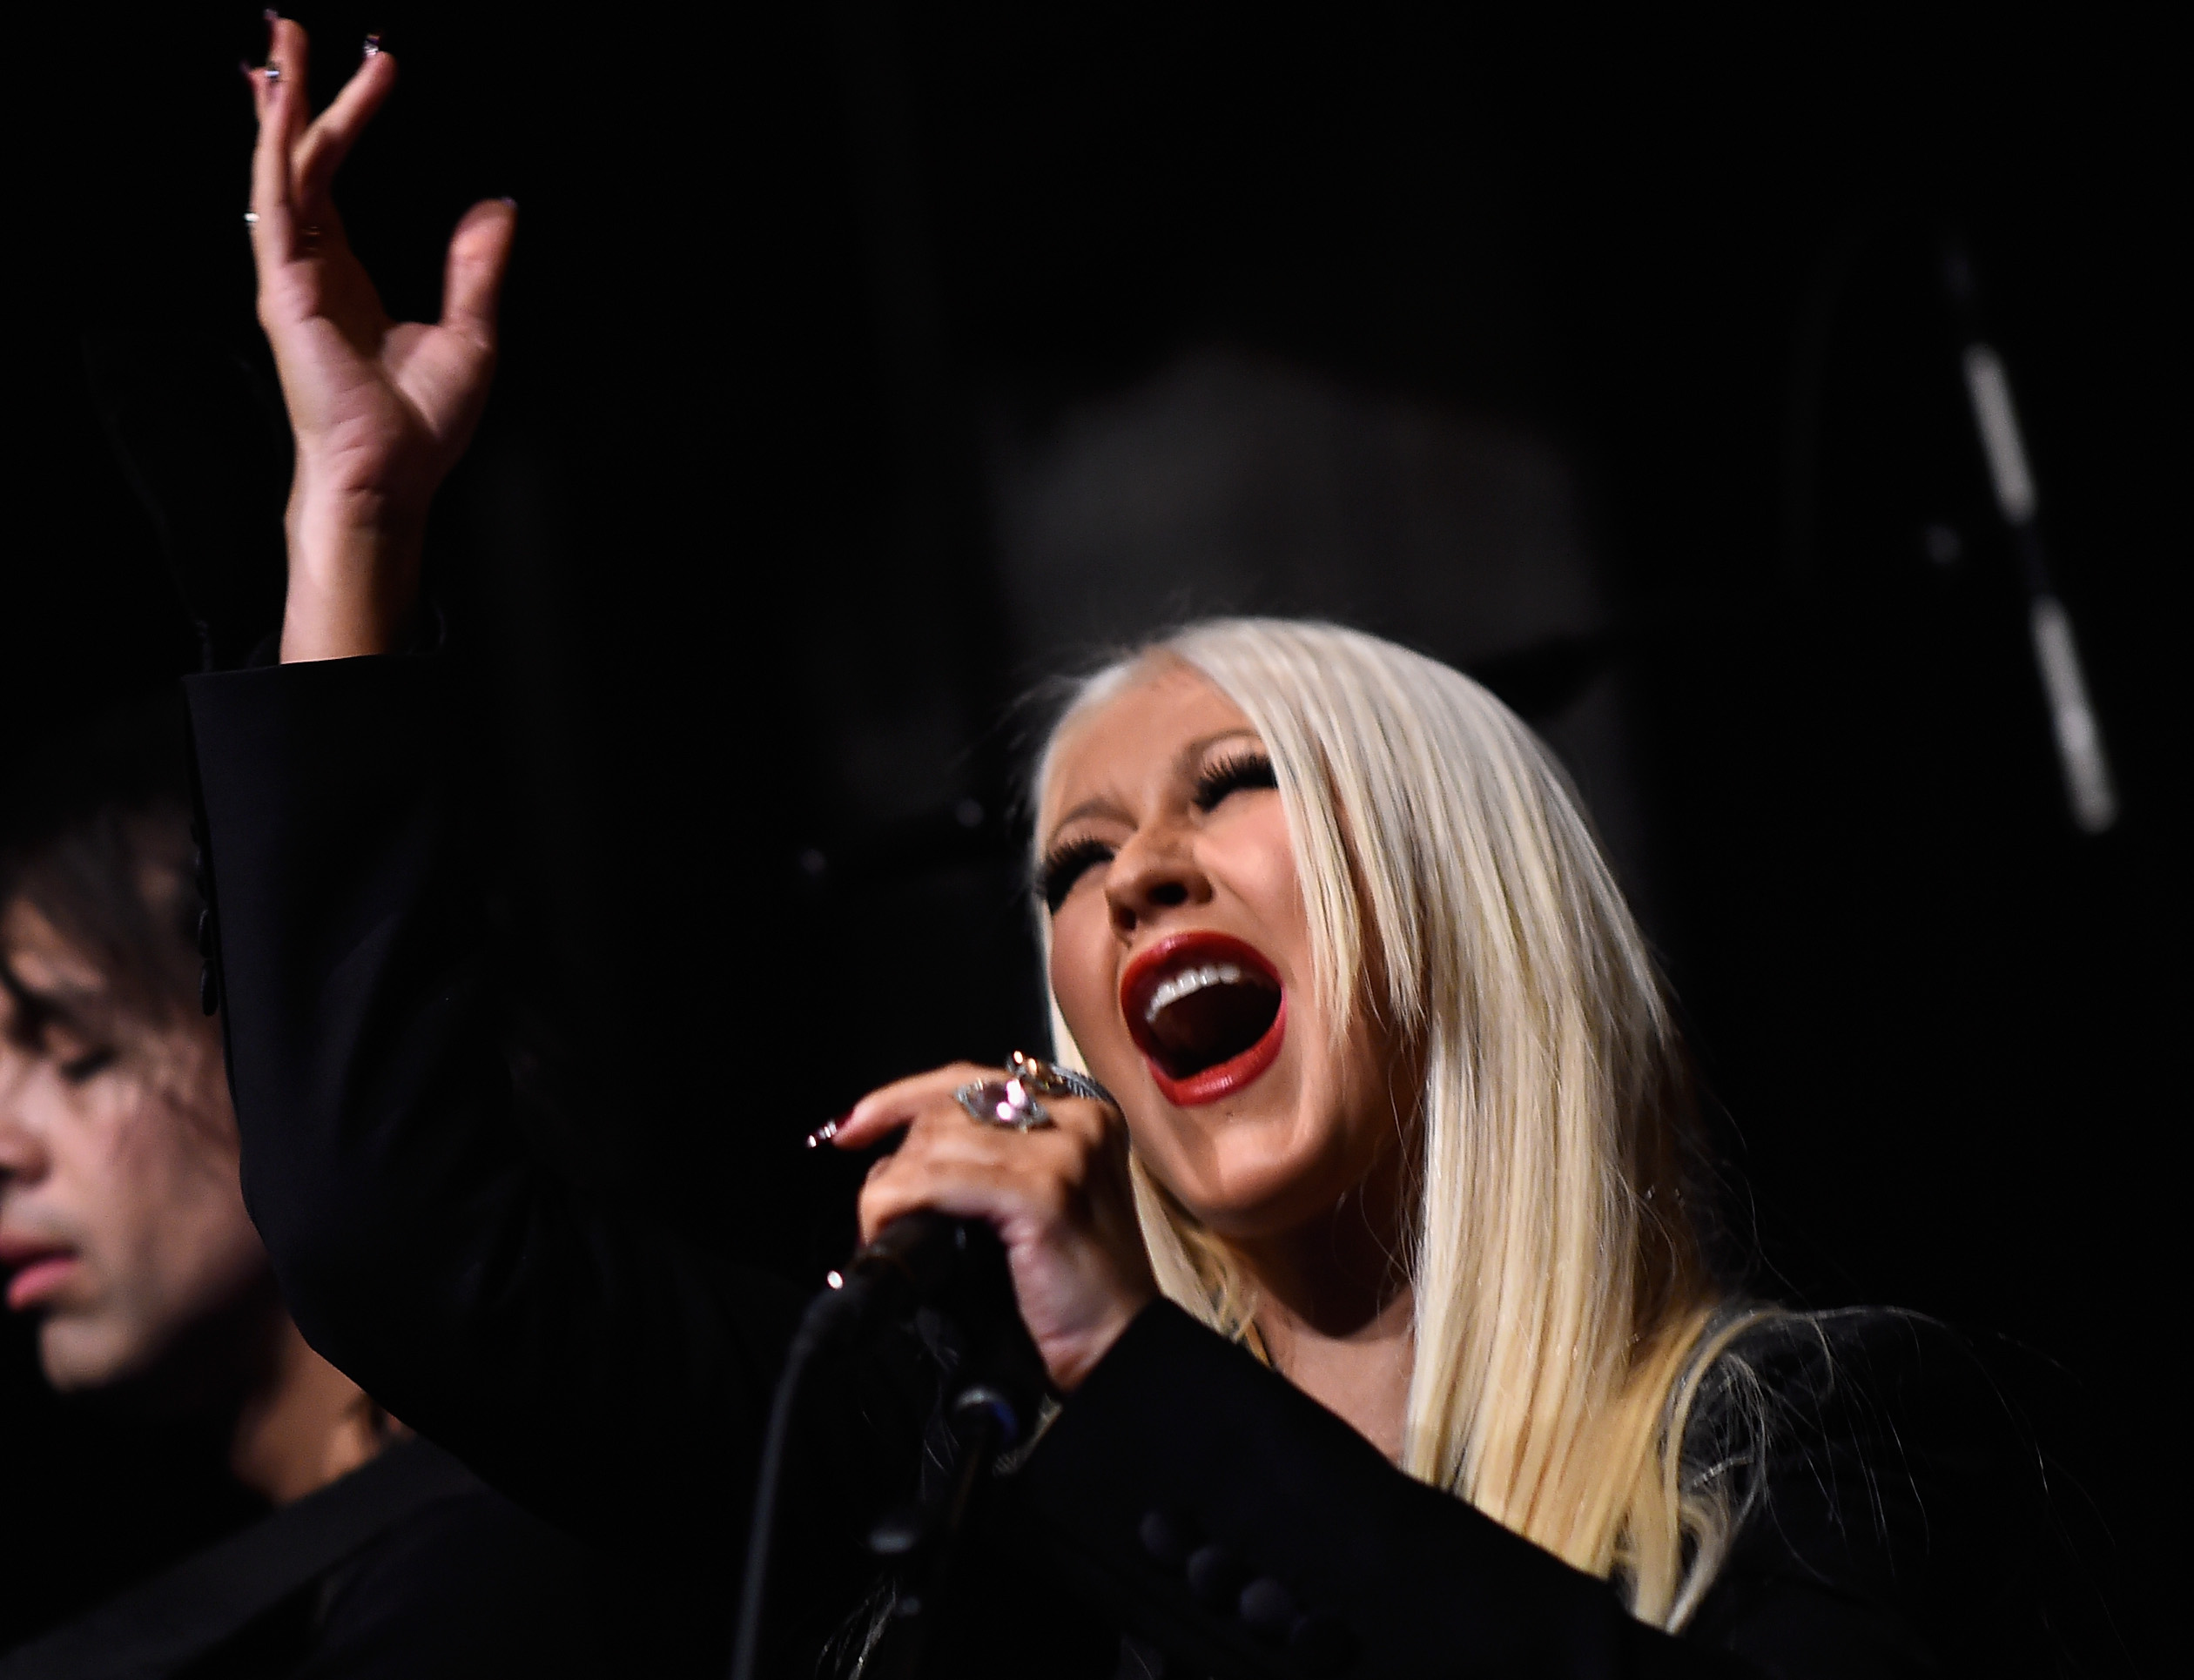 Singer Christina Aguilera performs at the Linda Perry Celebration For The Song  Hands Of Love  From The Film  Freeheld  on Jan. 5, 2016 in Los Angeles, California.